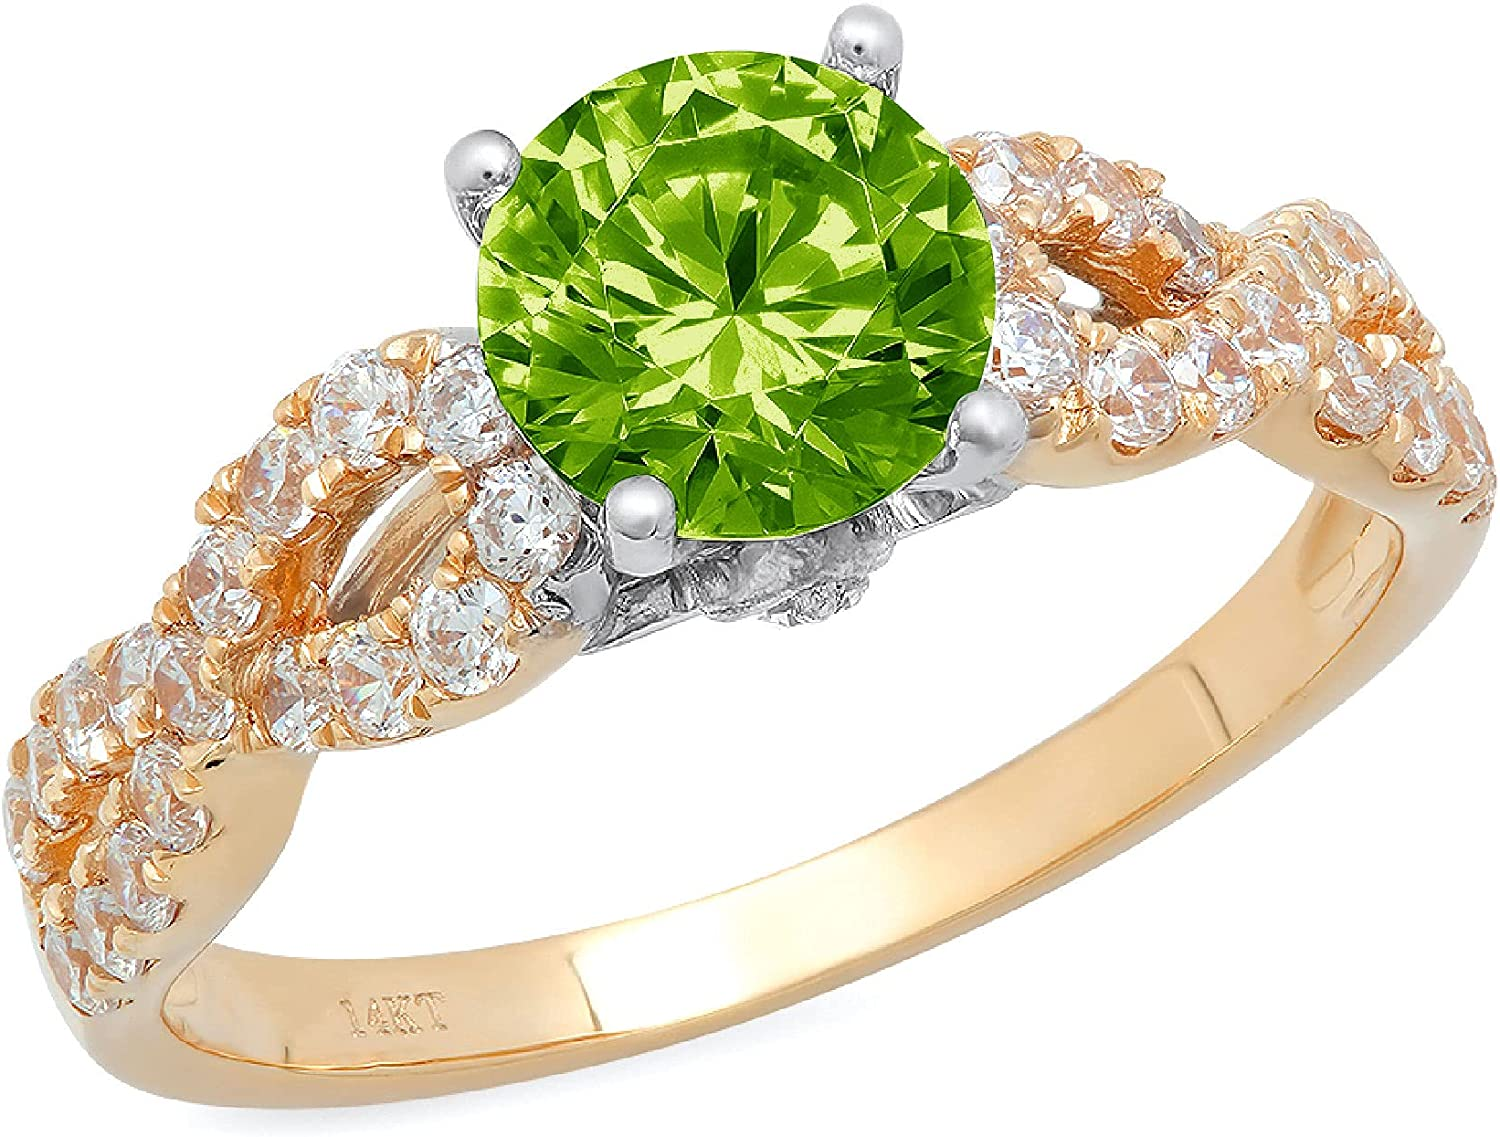 1.35ct Brilliant Round Cut Solitaire Genuine Flawless Natural Green Peridot Gemstone Engagement Promise Anniversary Bridal Wedding Accent Ring Solid 18K 2 tone Gold